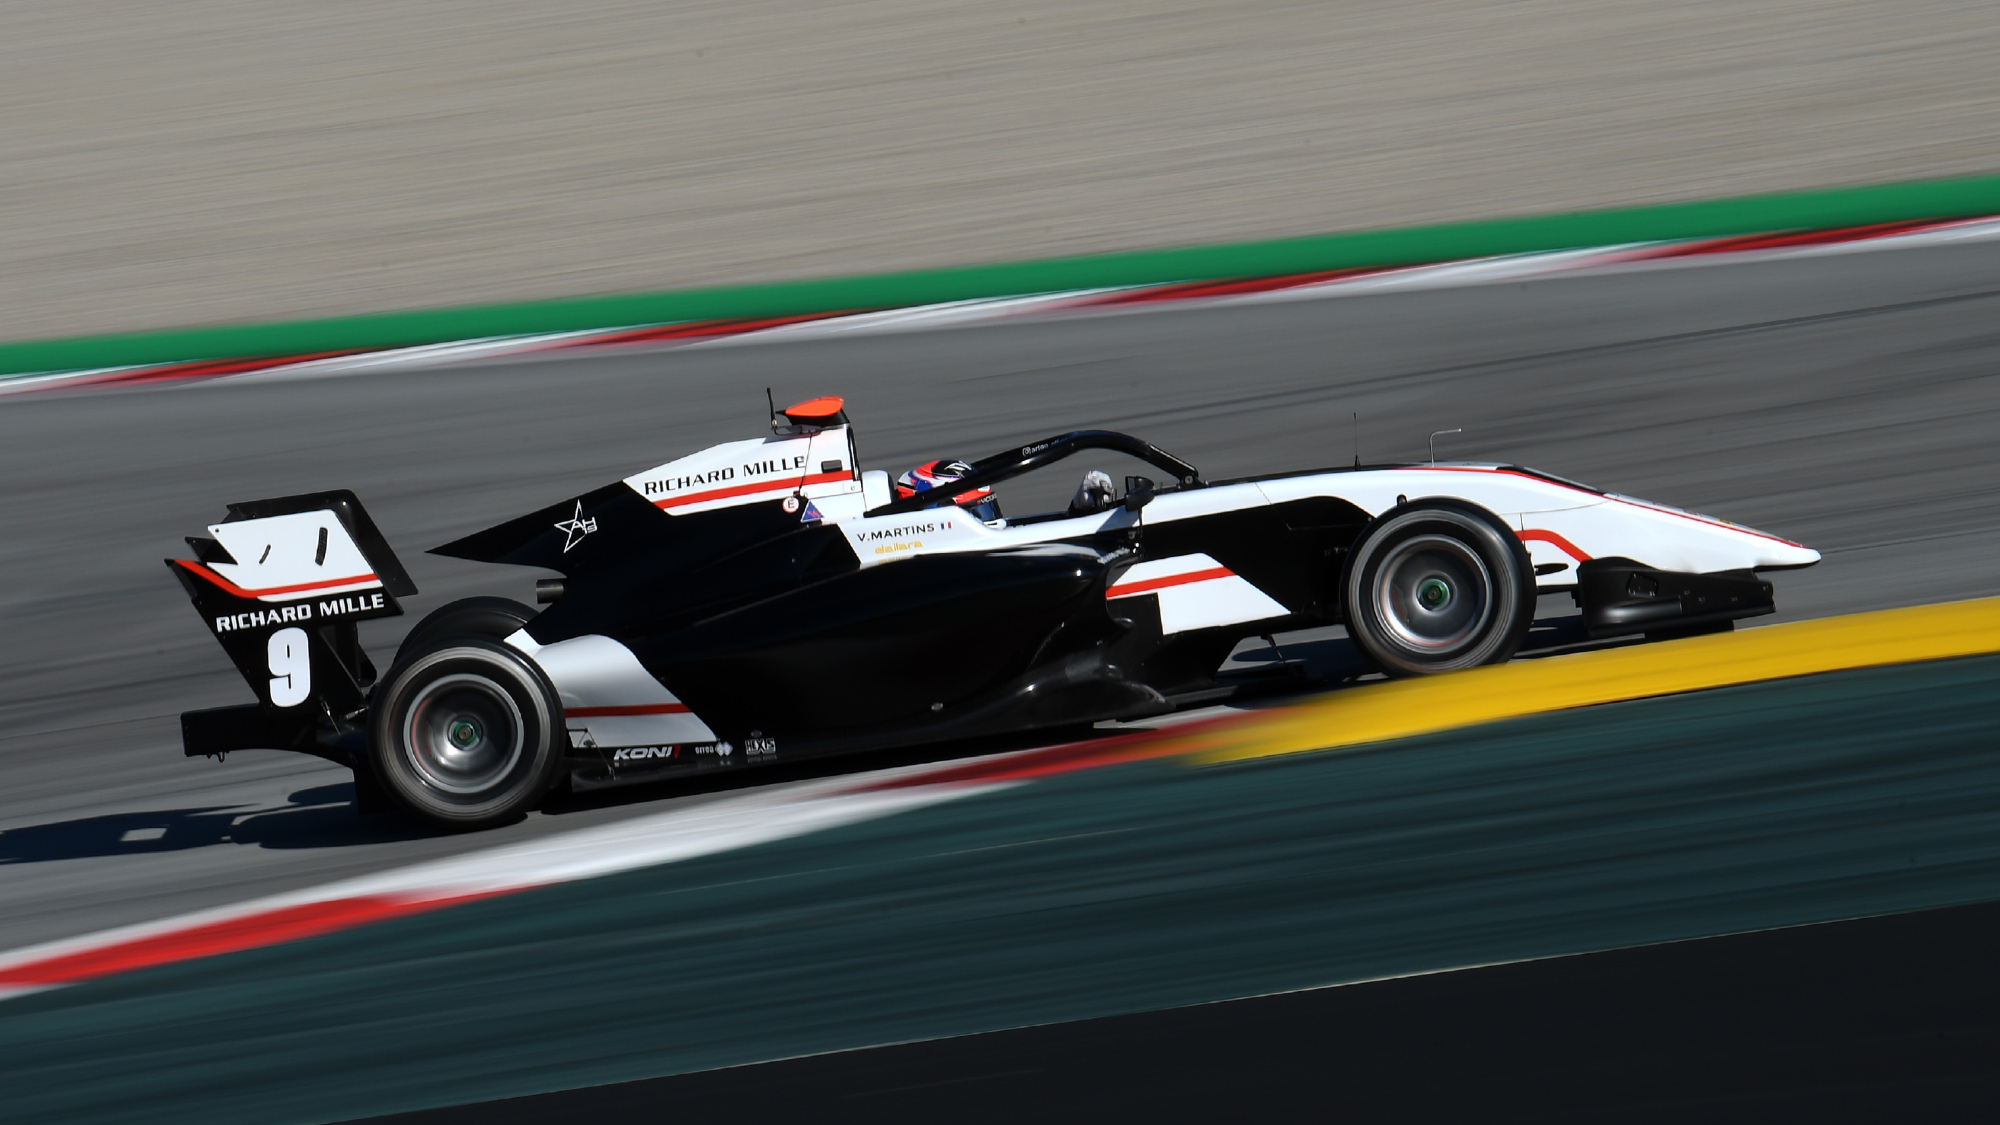 Alpine targeting F2 title with latest Academy line-up